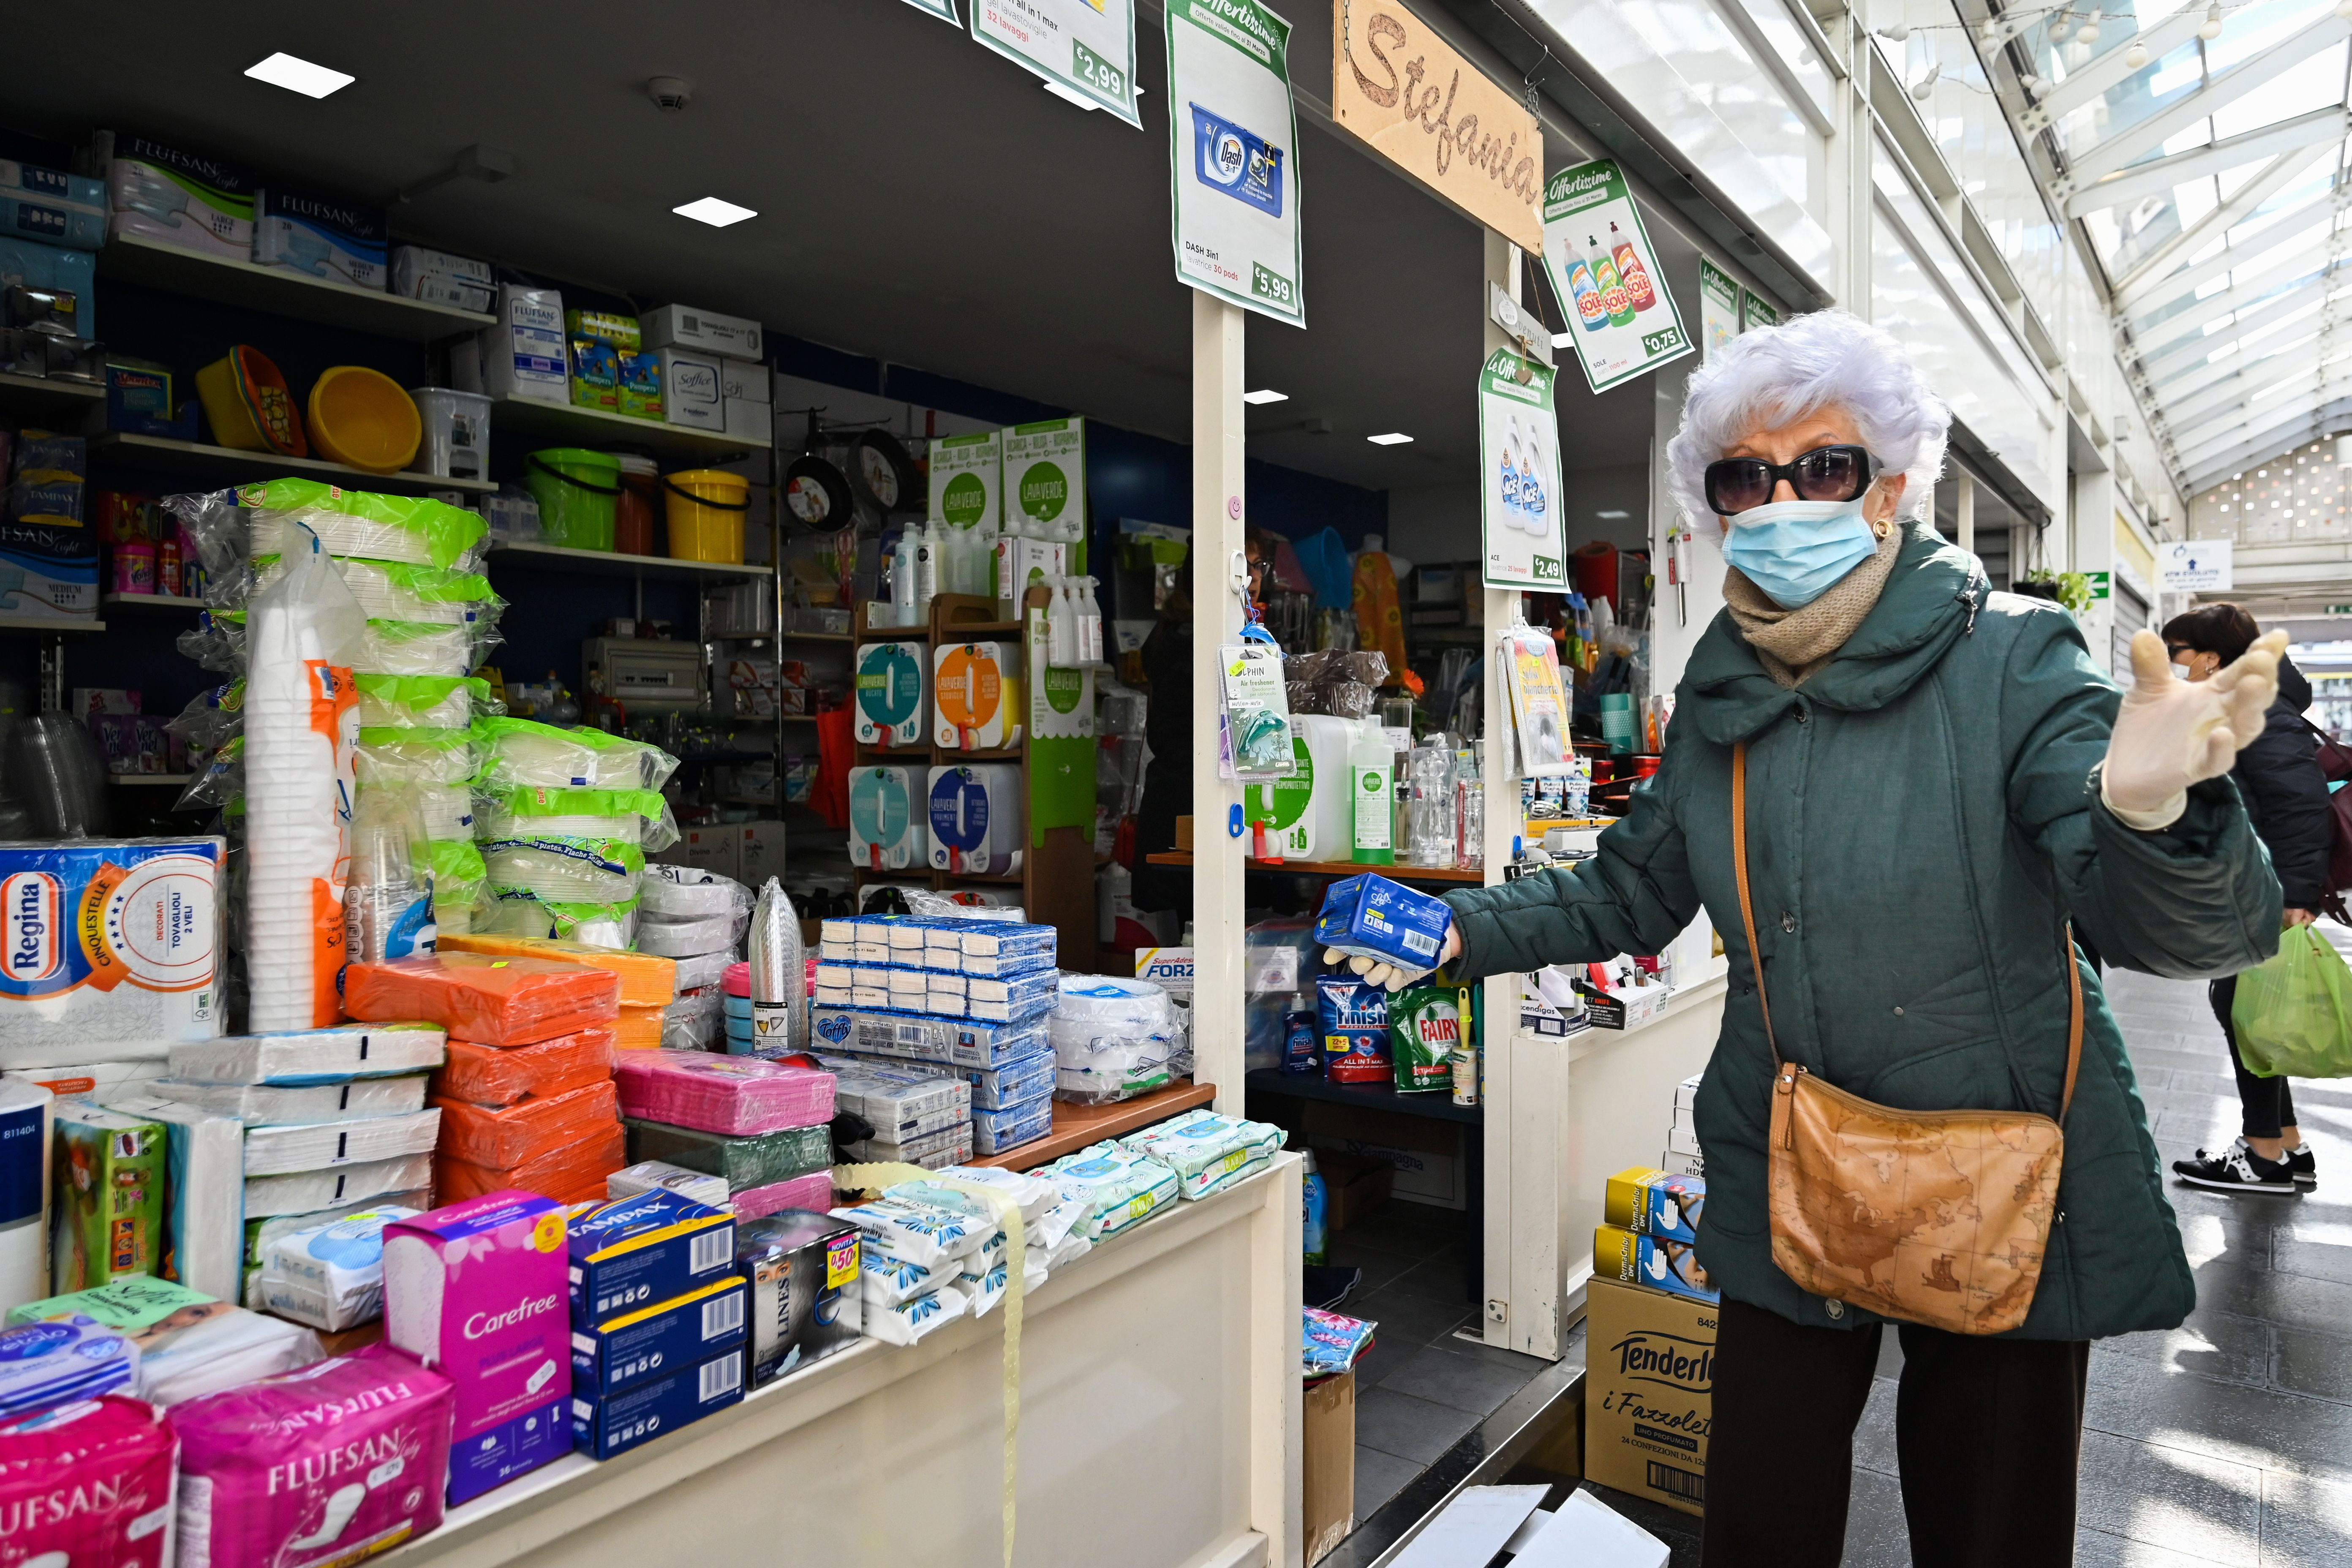 A senior citizen shops while wearing a surgical mask and rubber gloves.